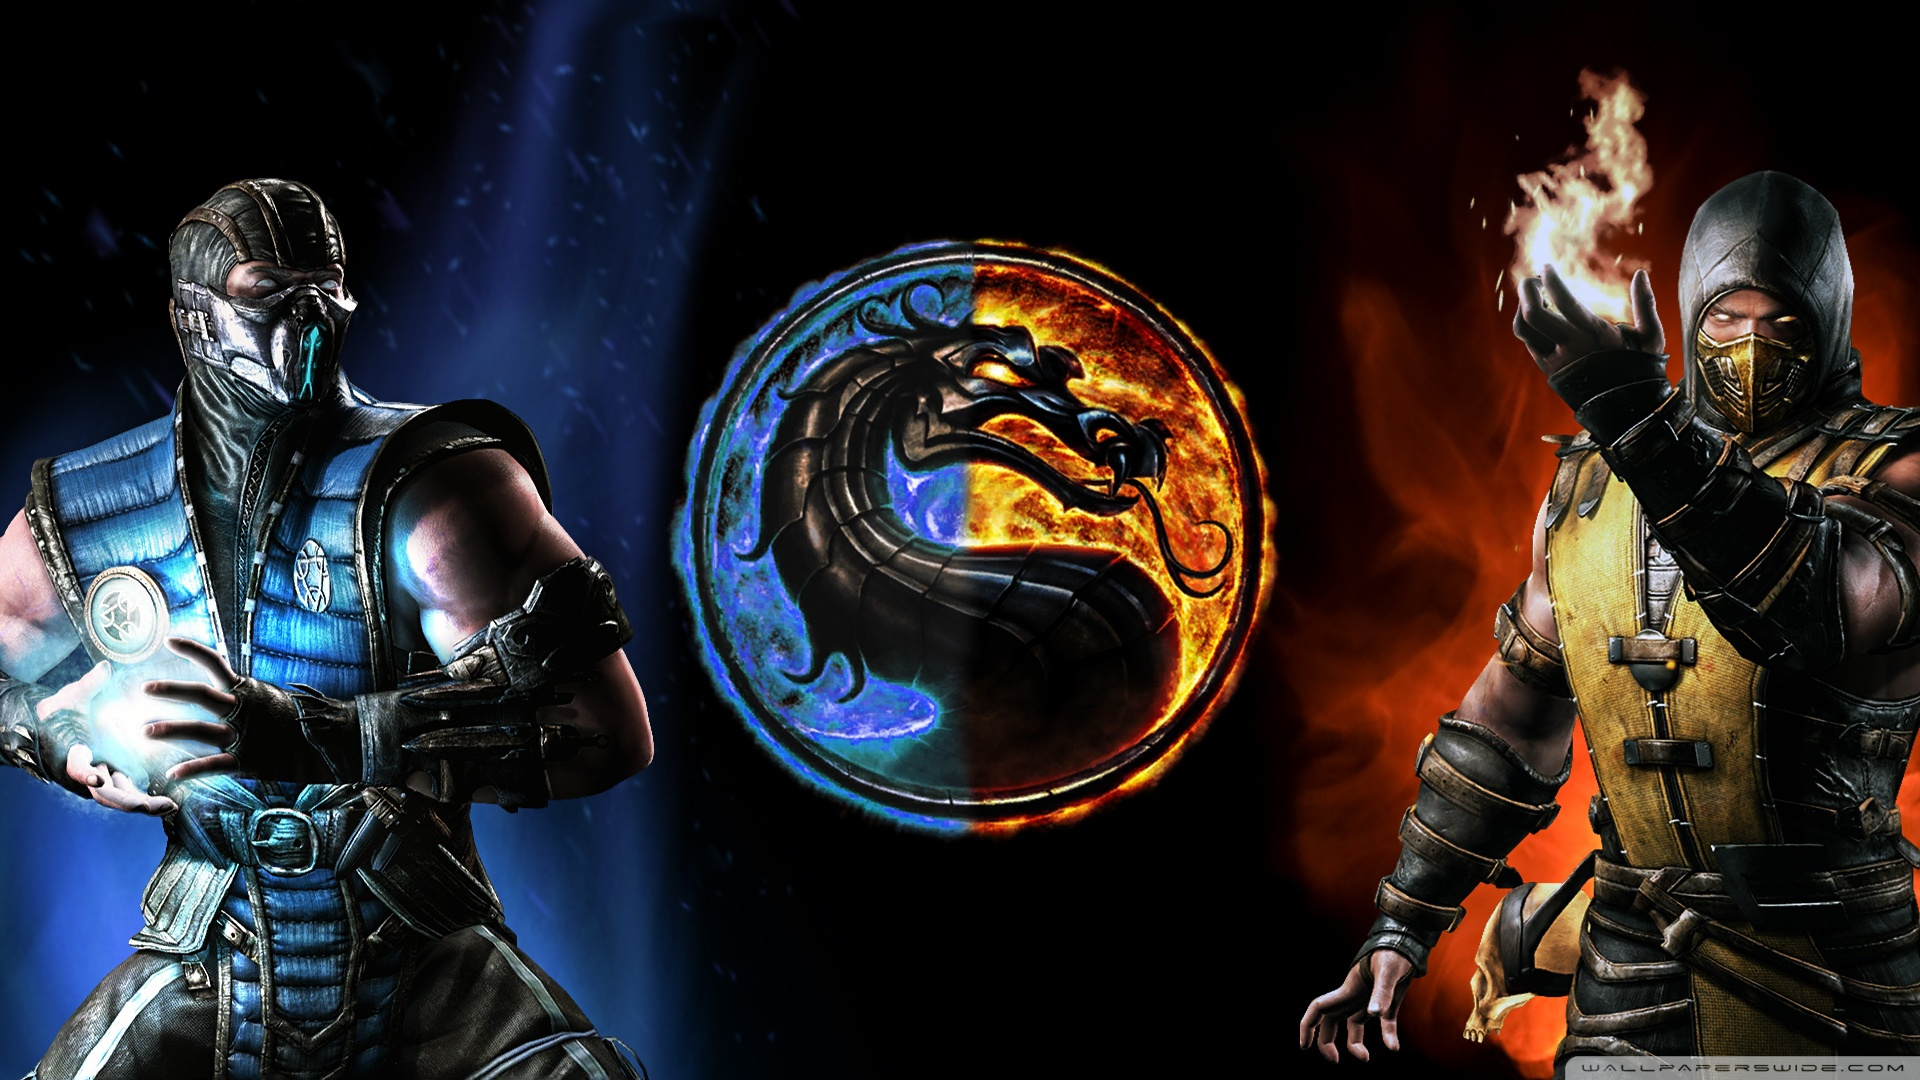 48cc87 mortal kombat x 7 wallpaper